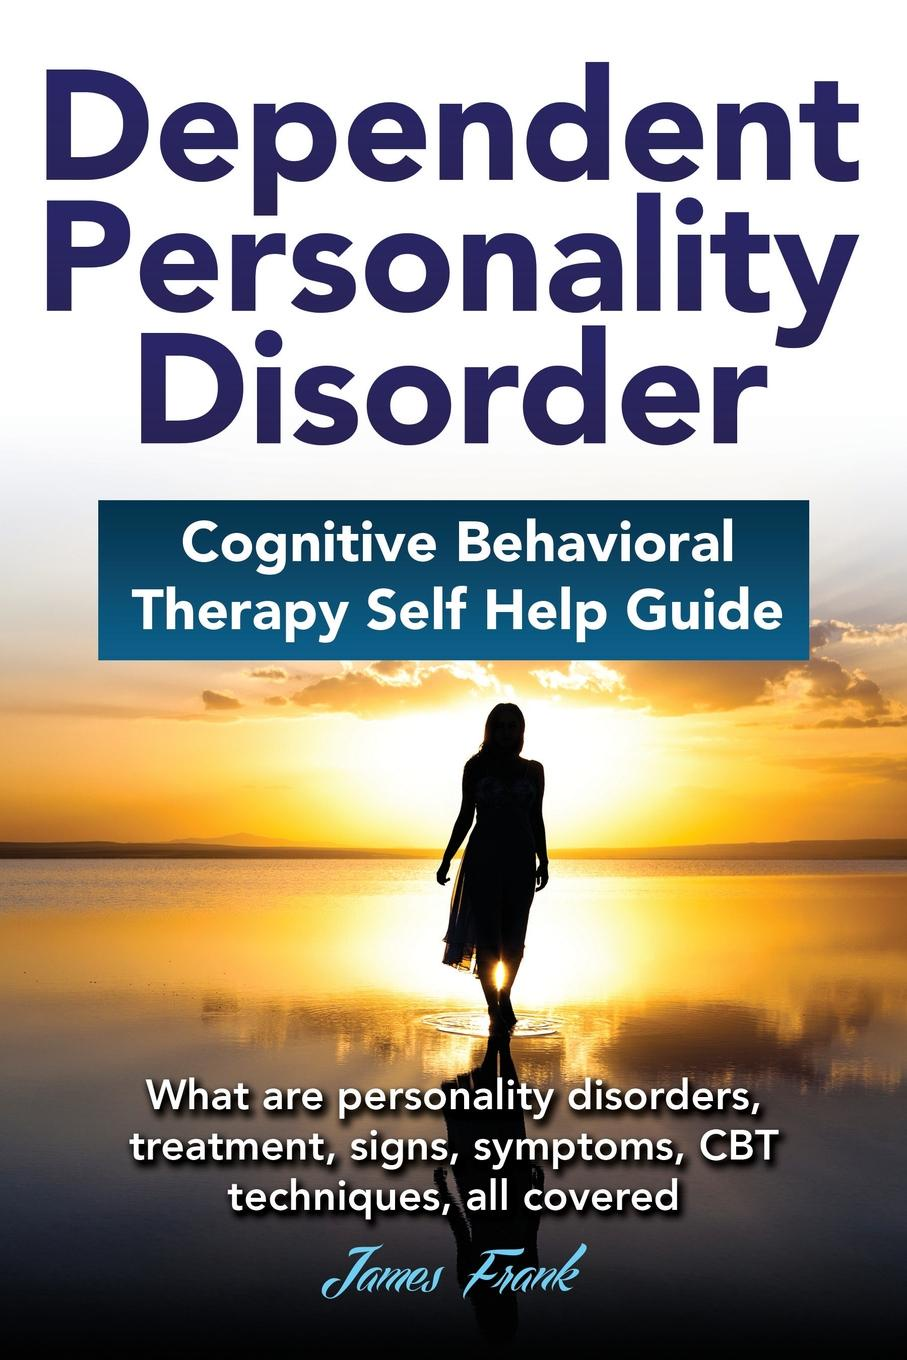 Купить Dependent Personality Disorder Cognitive Behavioral Therapy self-help guide. What are personality disorders, treatment, signs, symptoms, CBT techniques, all covered на XWAP.SU